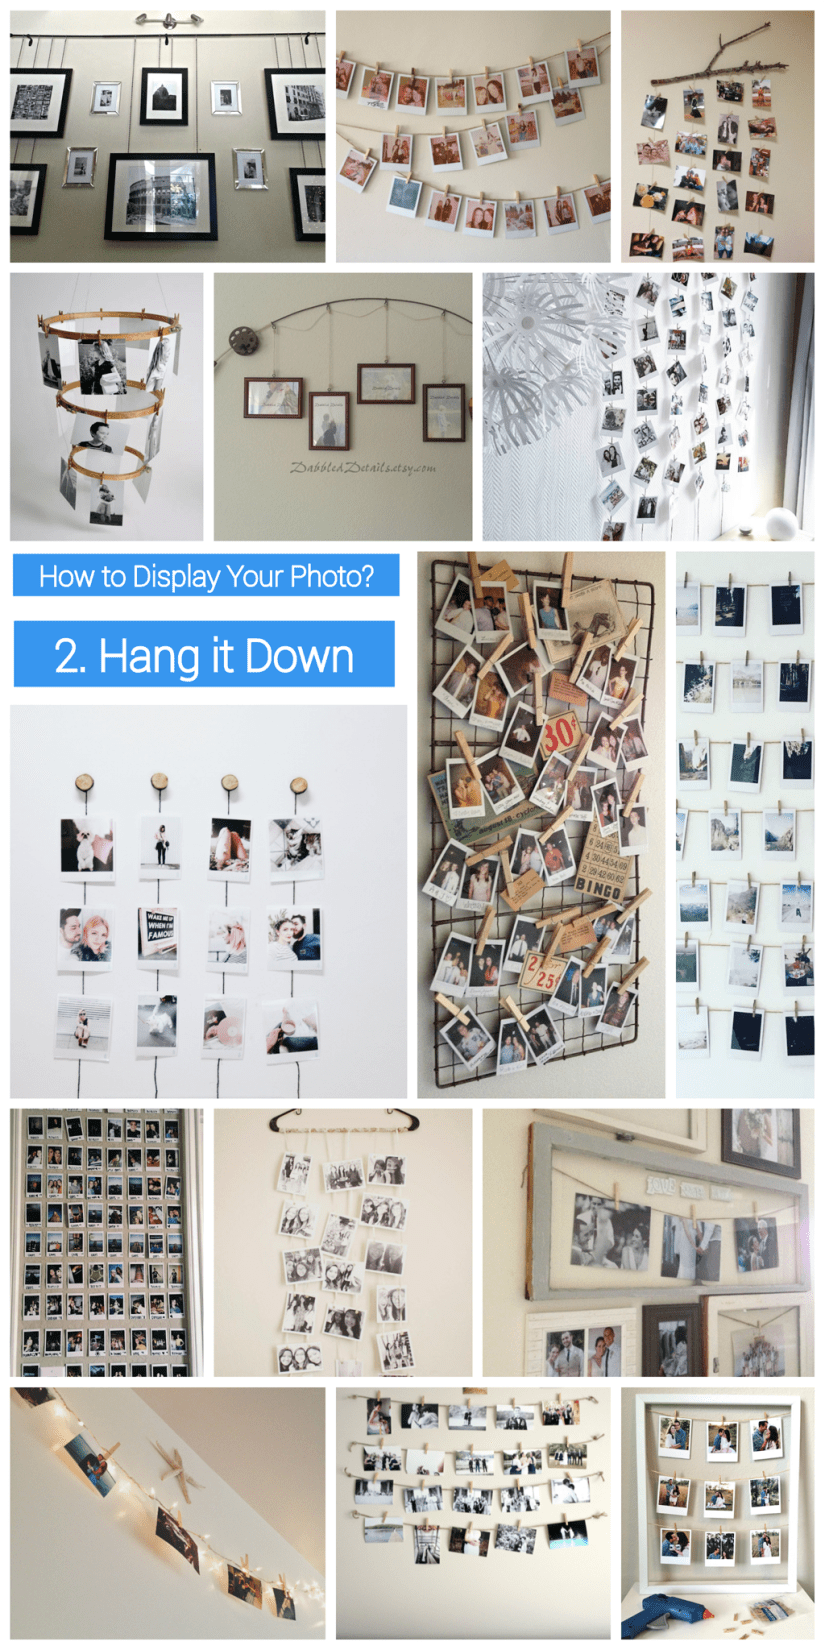 how to display  photo collage - hang the photo